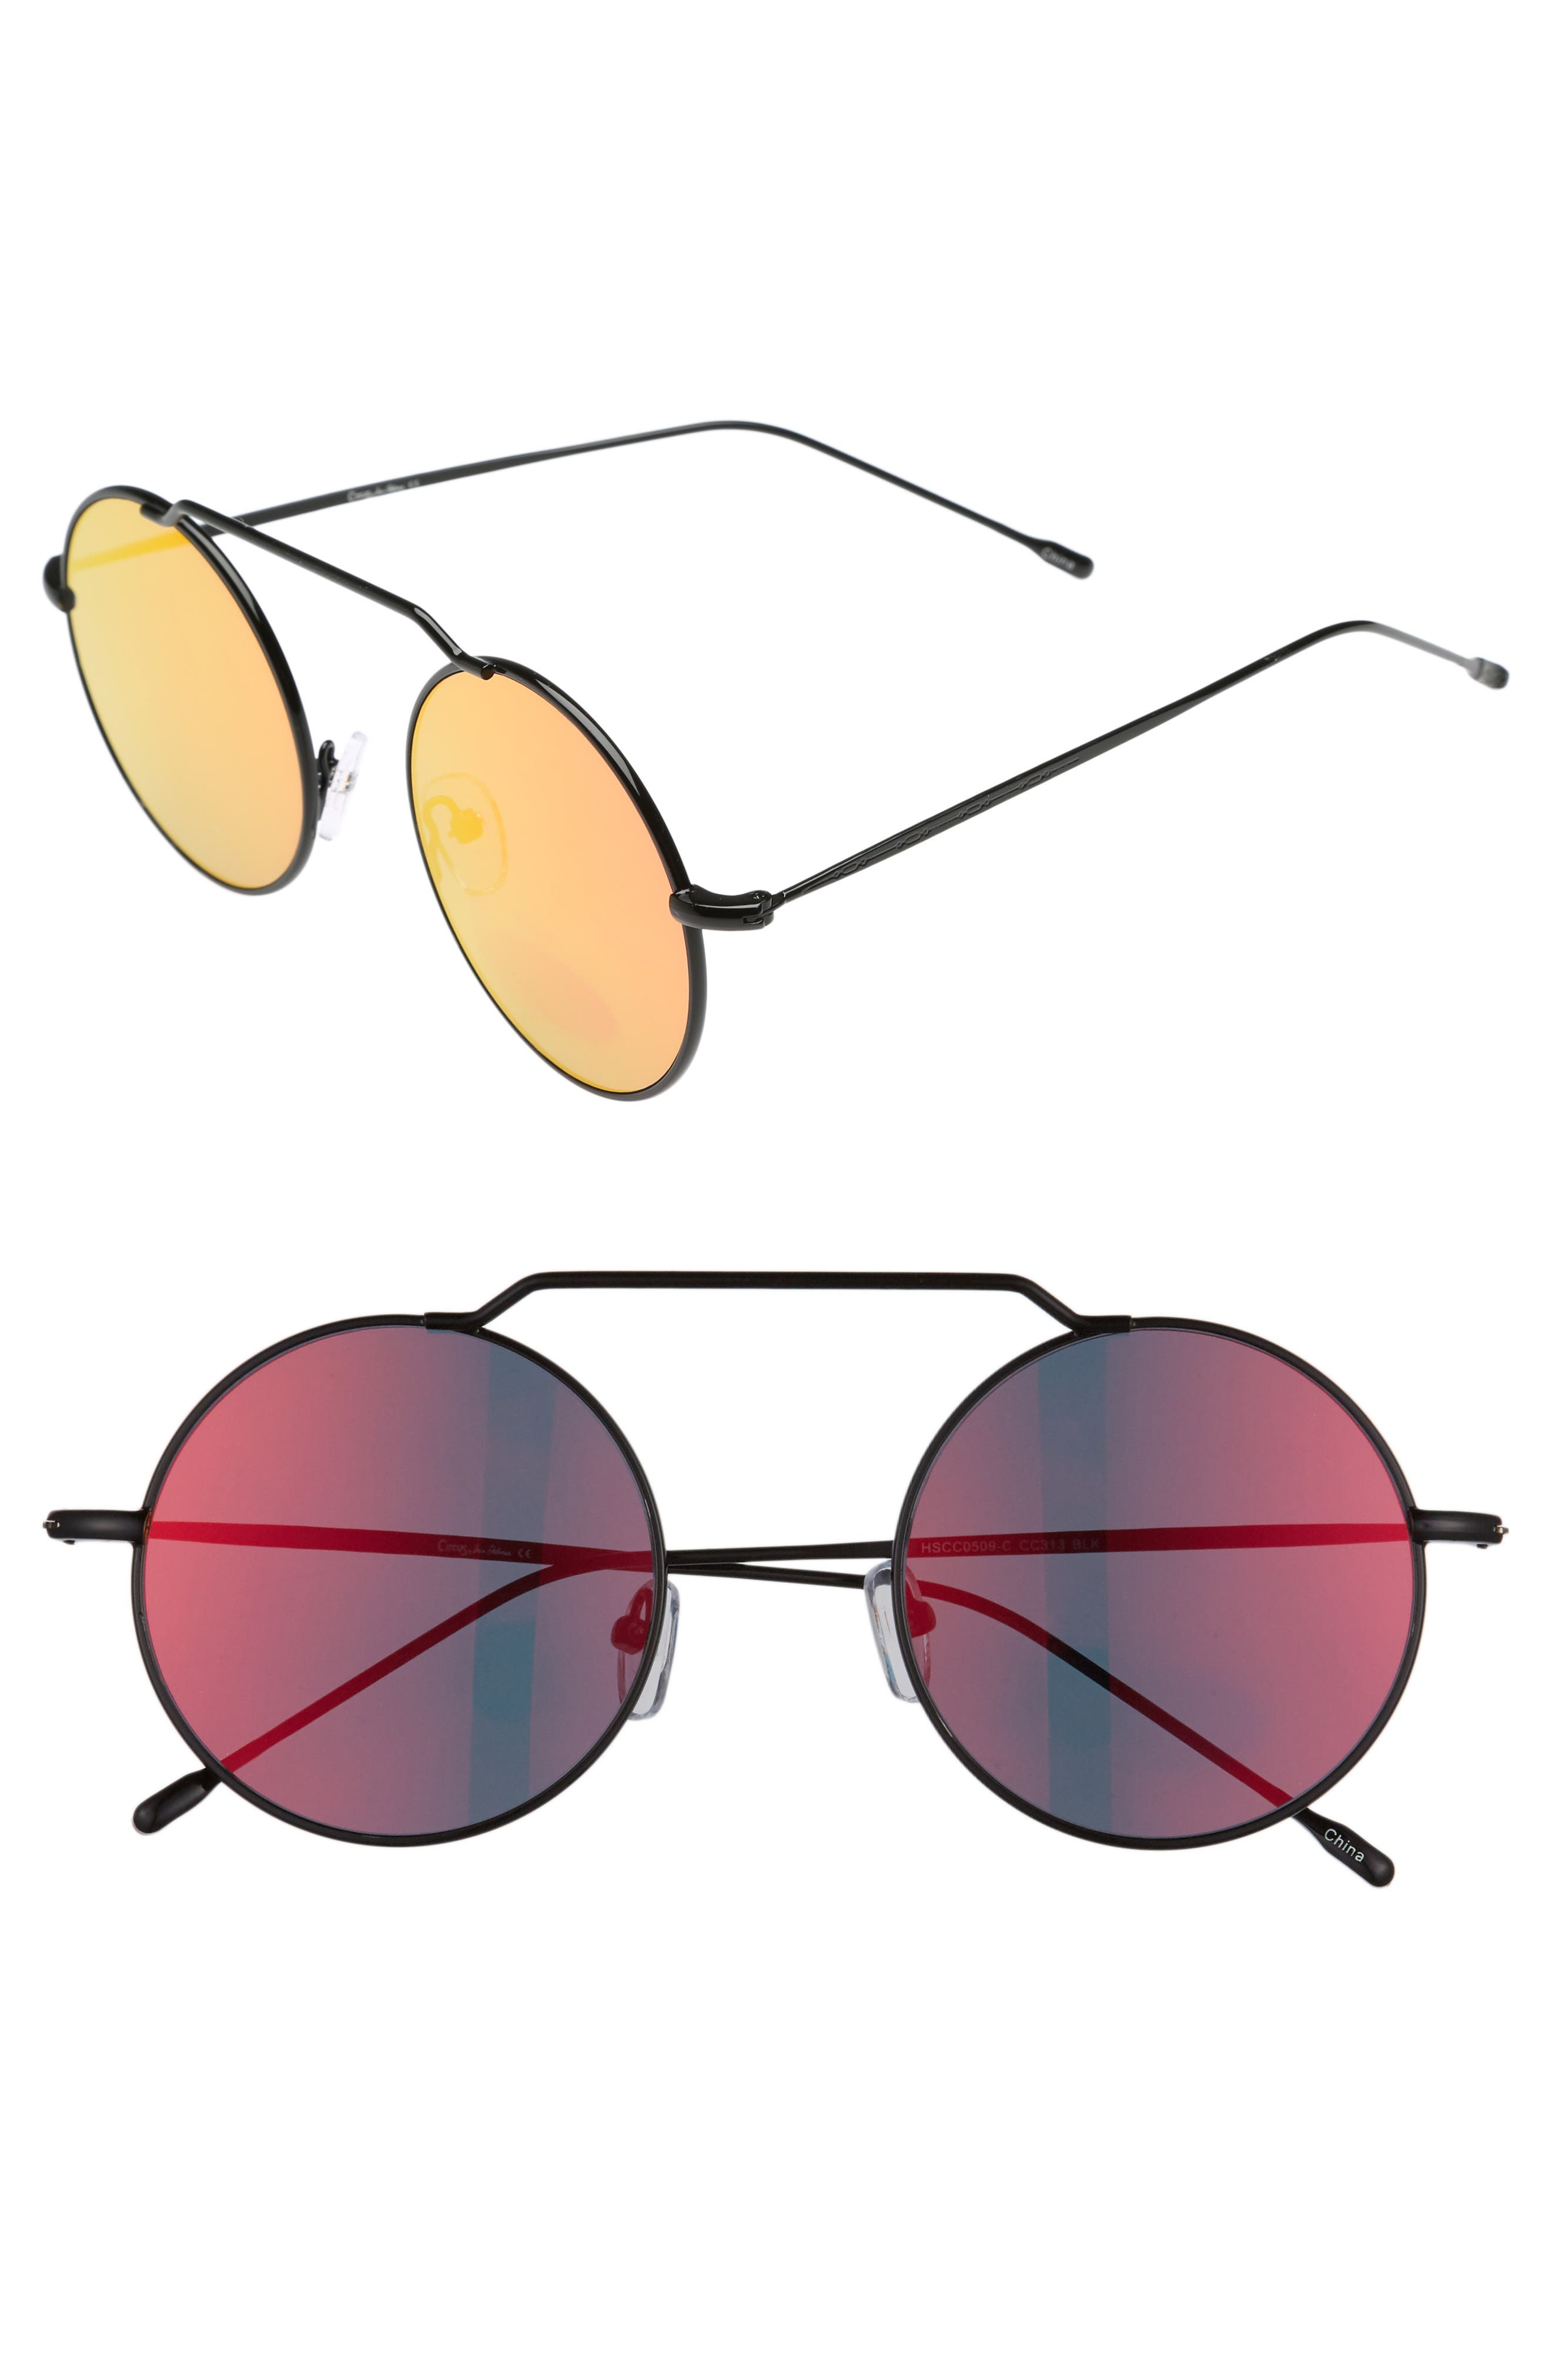 51mm Brow Bar Round Sunglasses,                         Main,                         color, 001